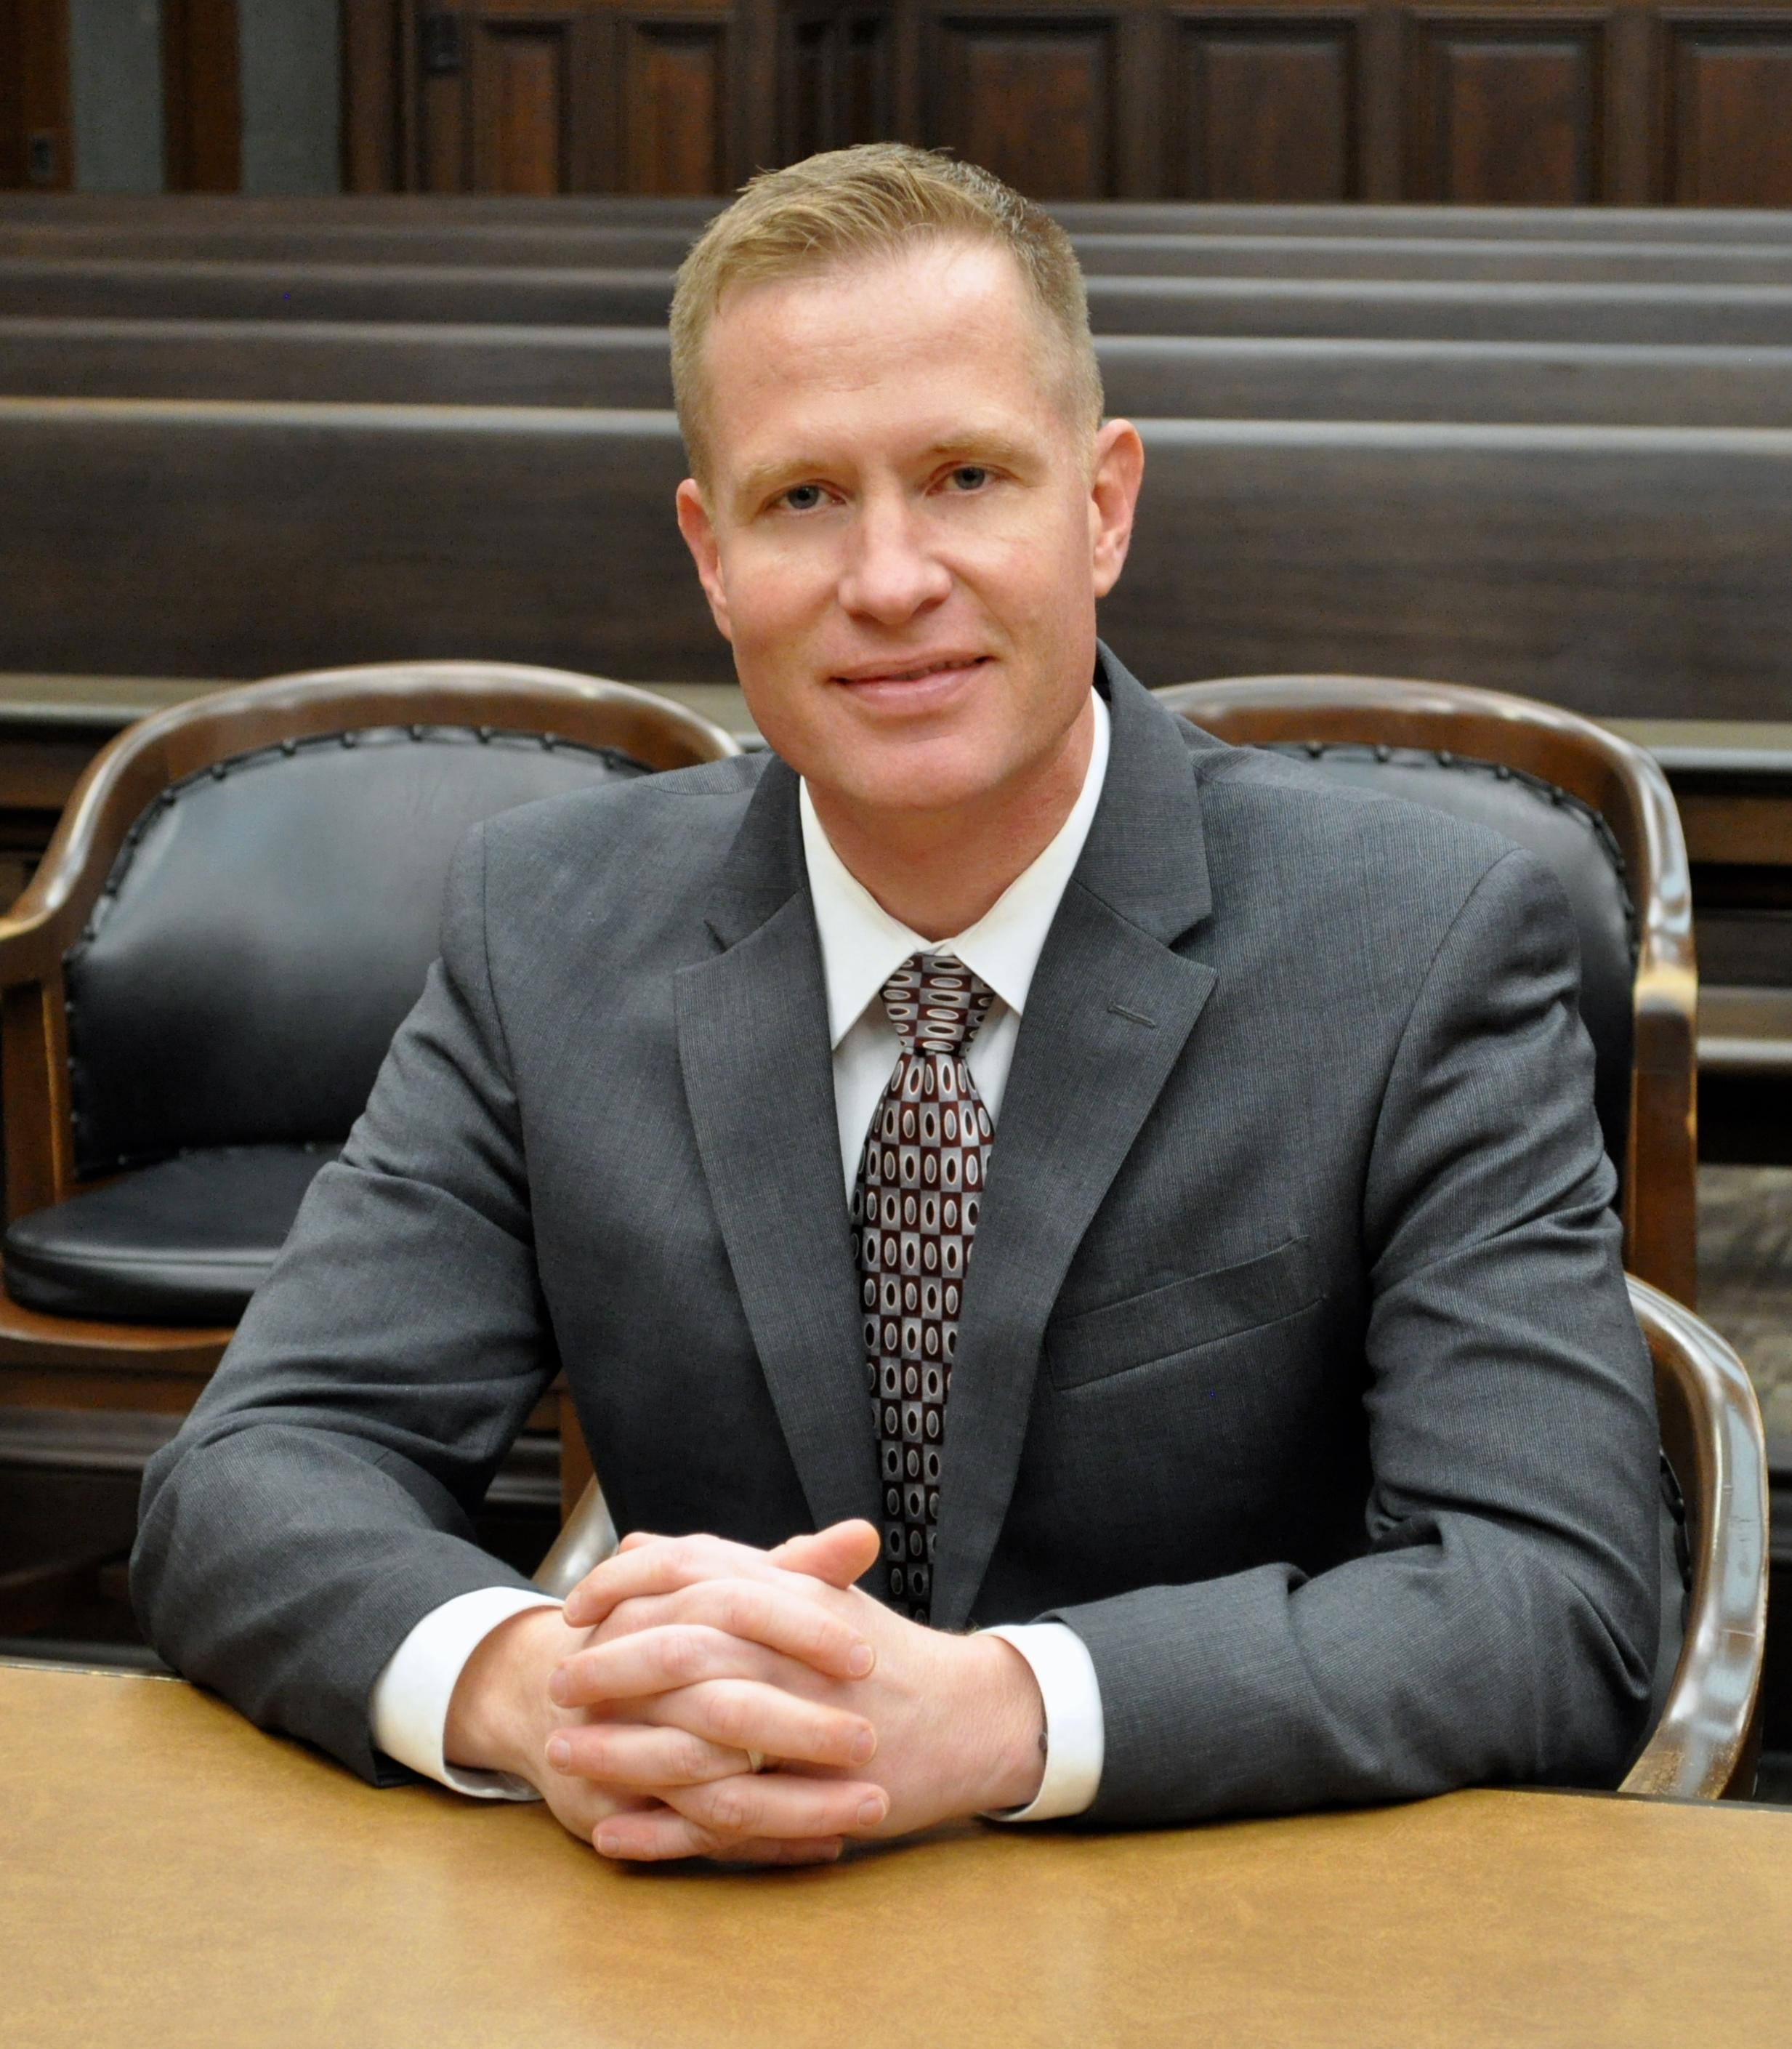 Luneckas Law, P.C. - Workers' Compensation & Personal Injury Lawyer image 0